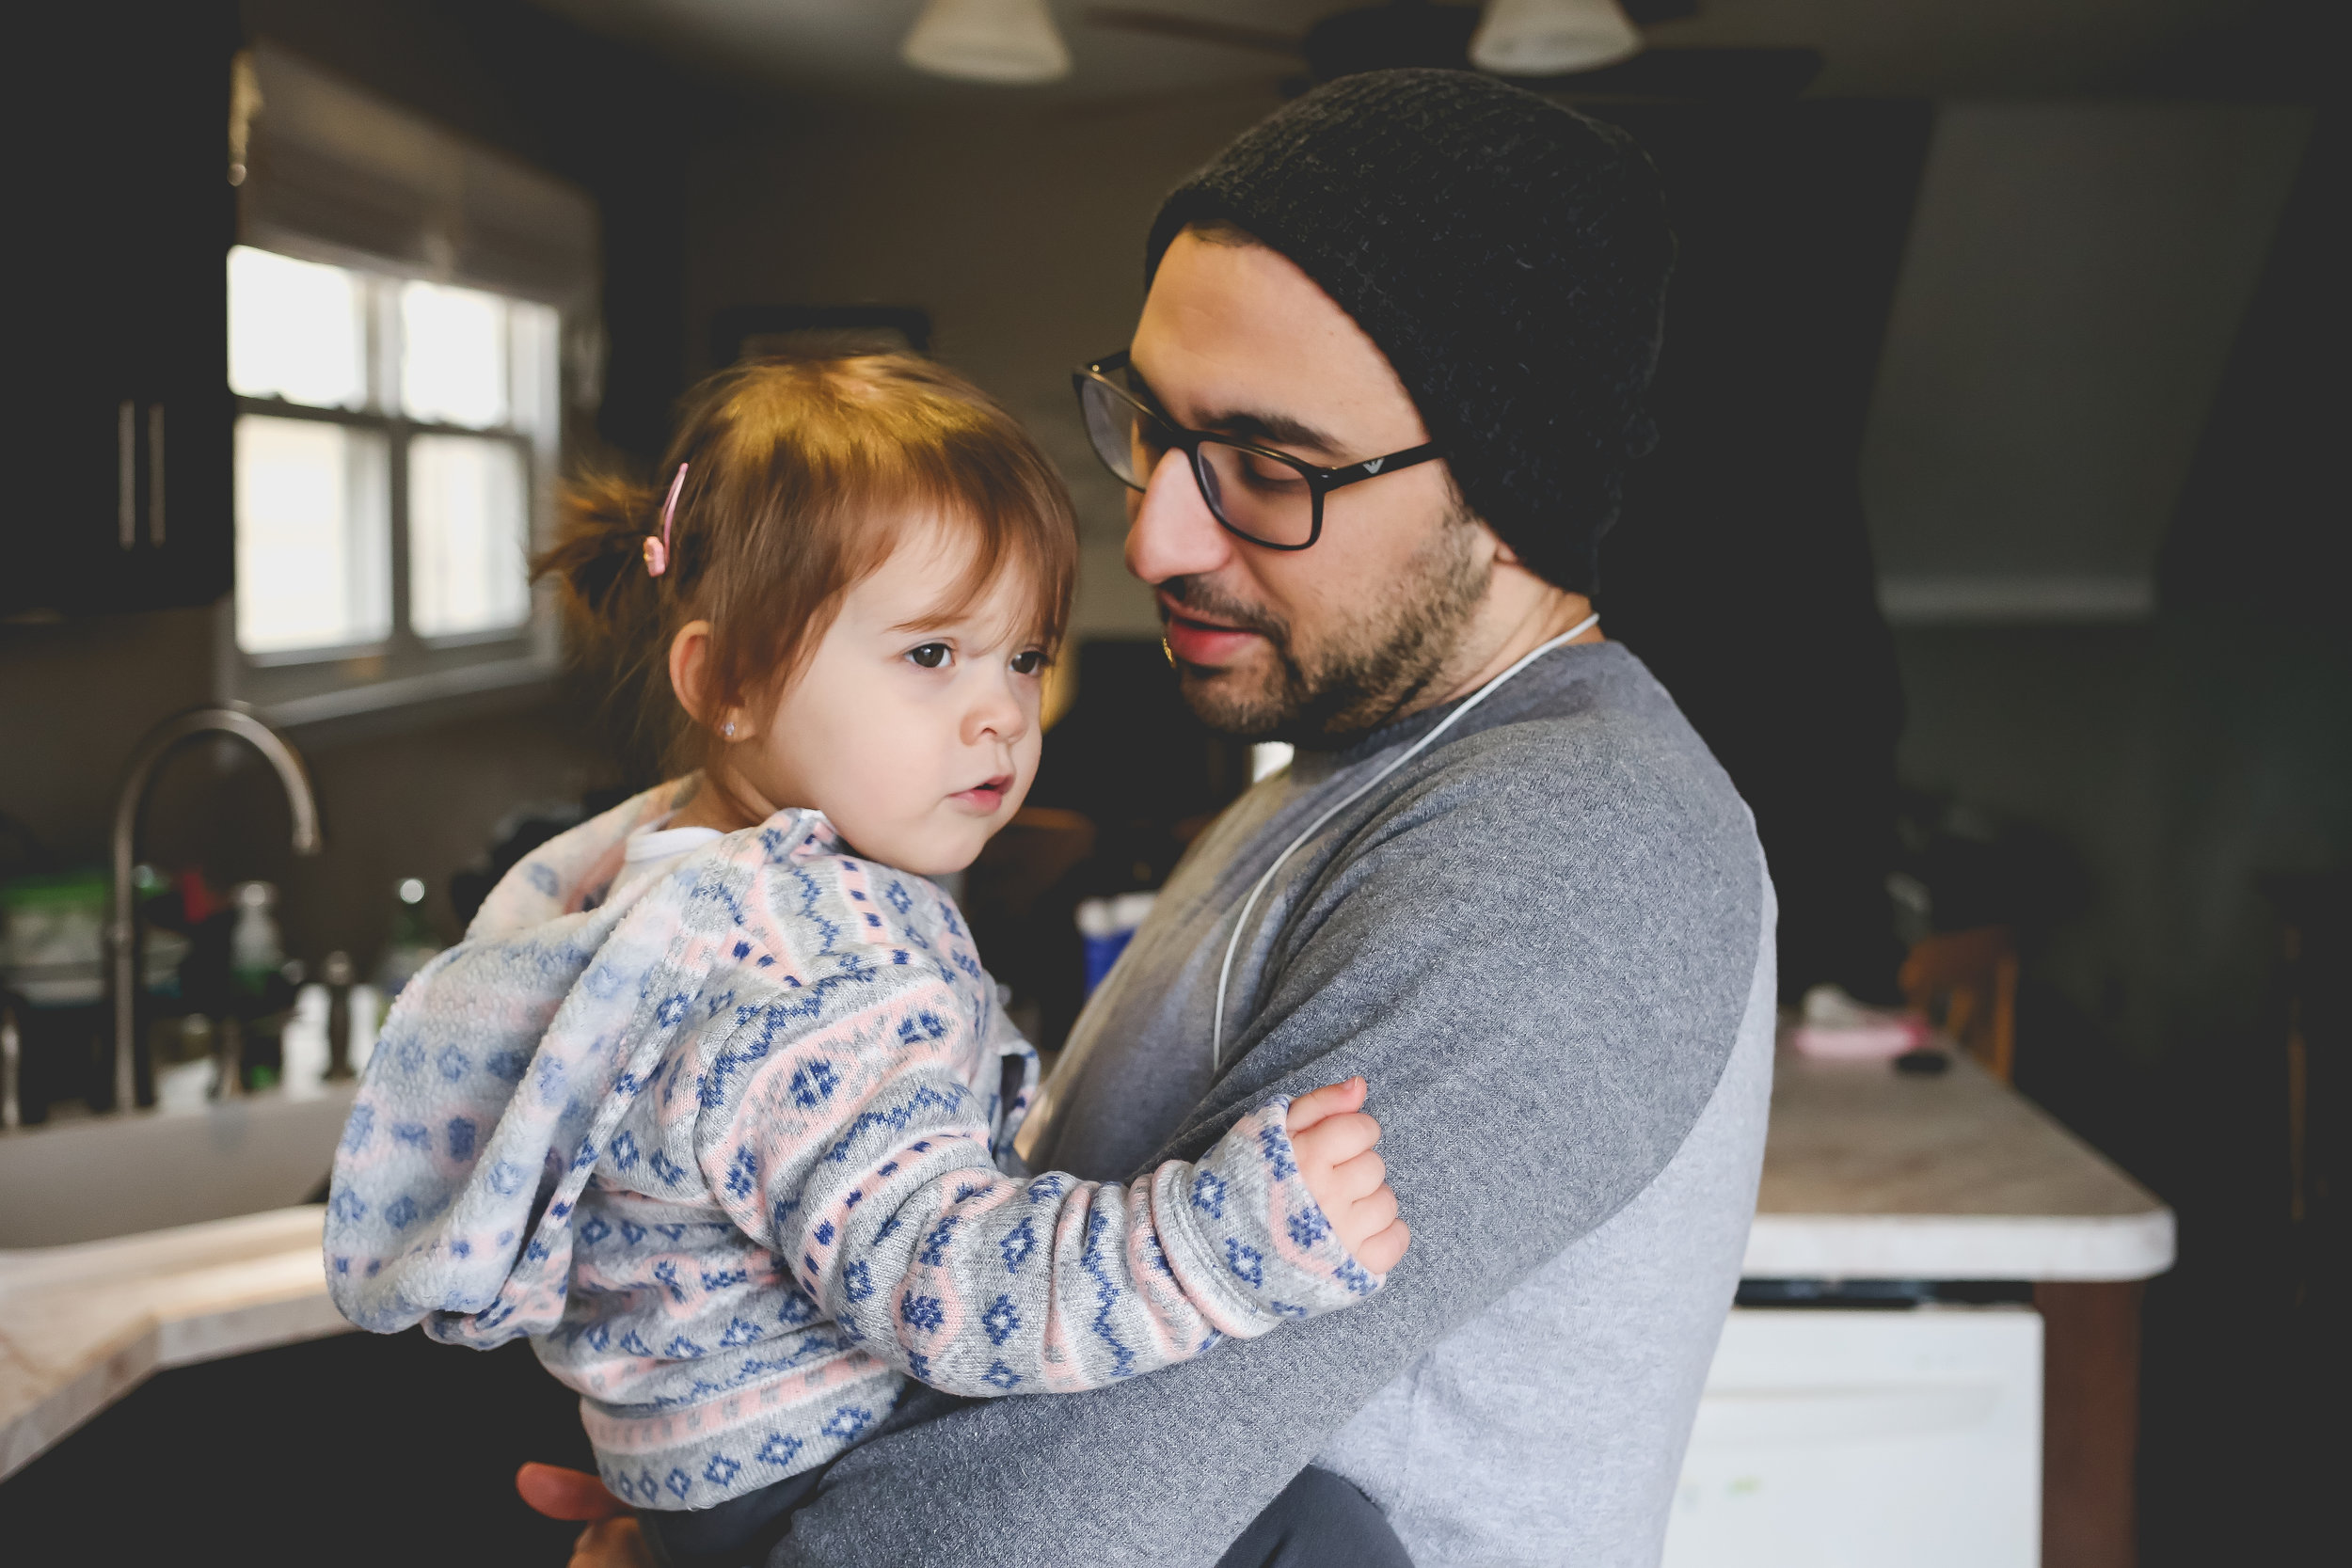 Father and daughter in their kitchen. At home family photography sessions by Jen Grima, Lehigh Valley Family Photographer.